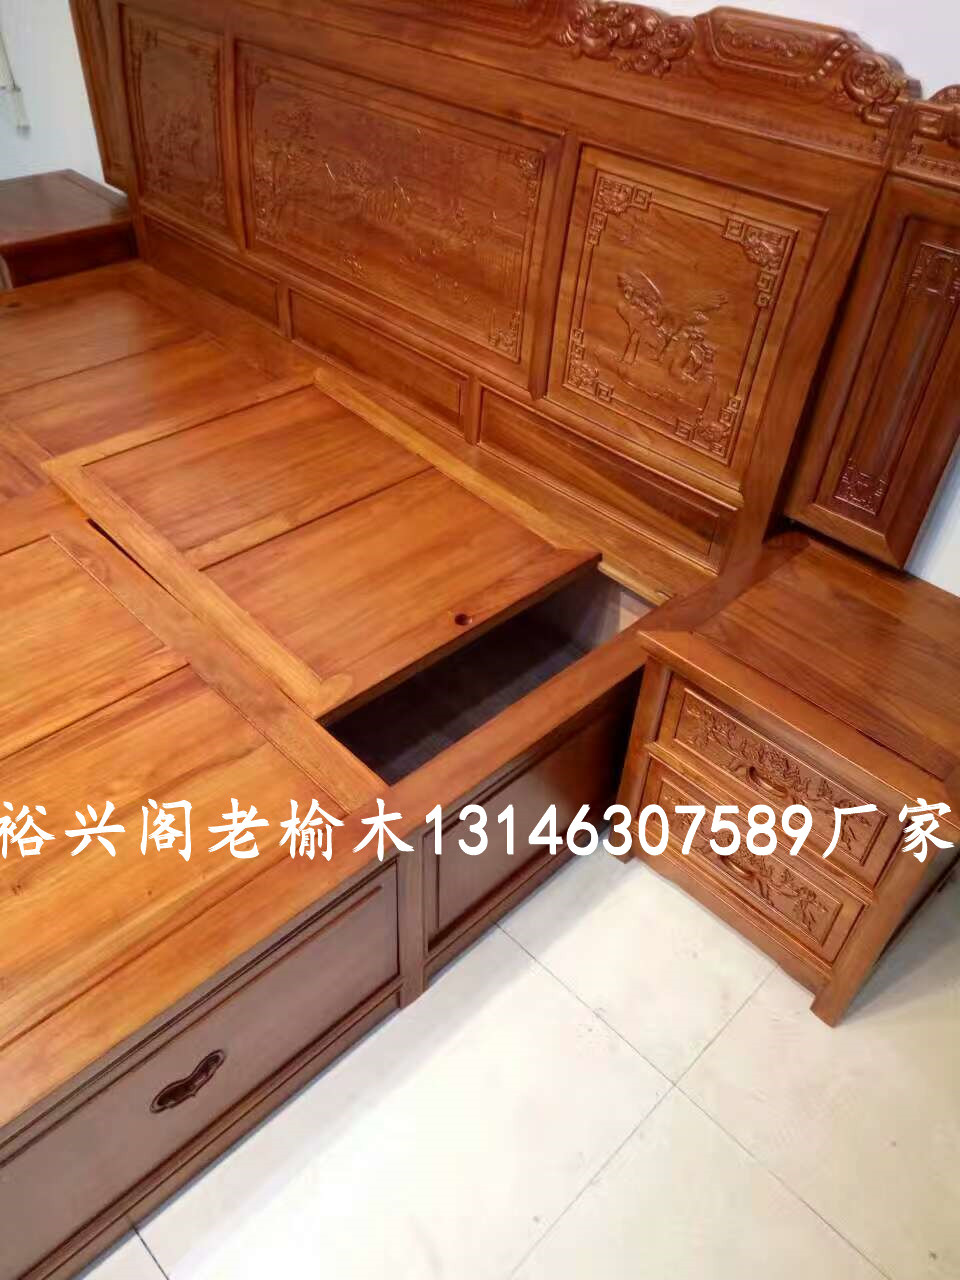 The old elm landscape double high box double wooden bed of classical Chinese of Ming and Qing Dynasties